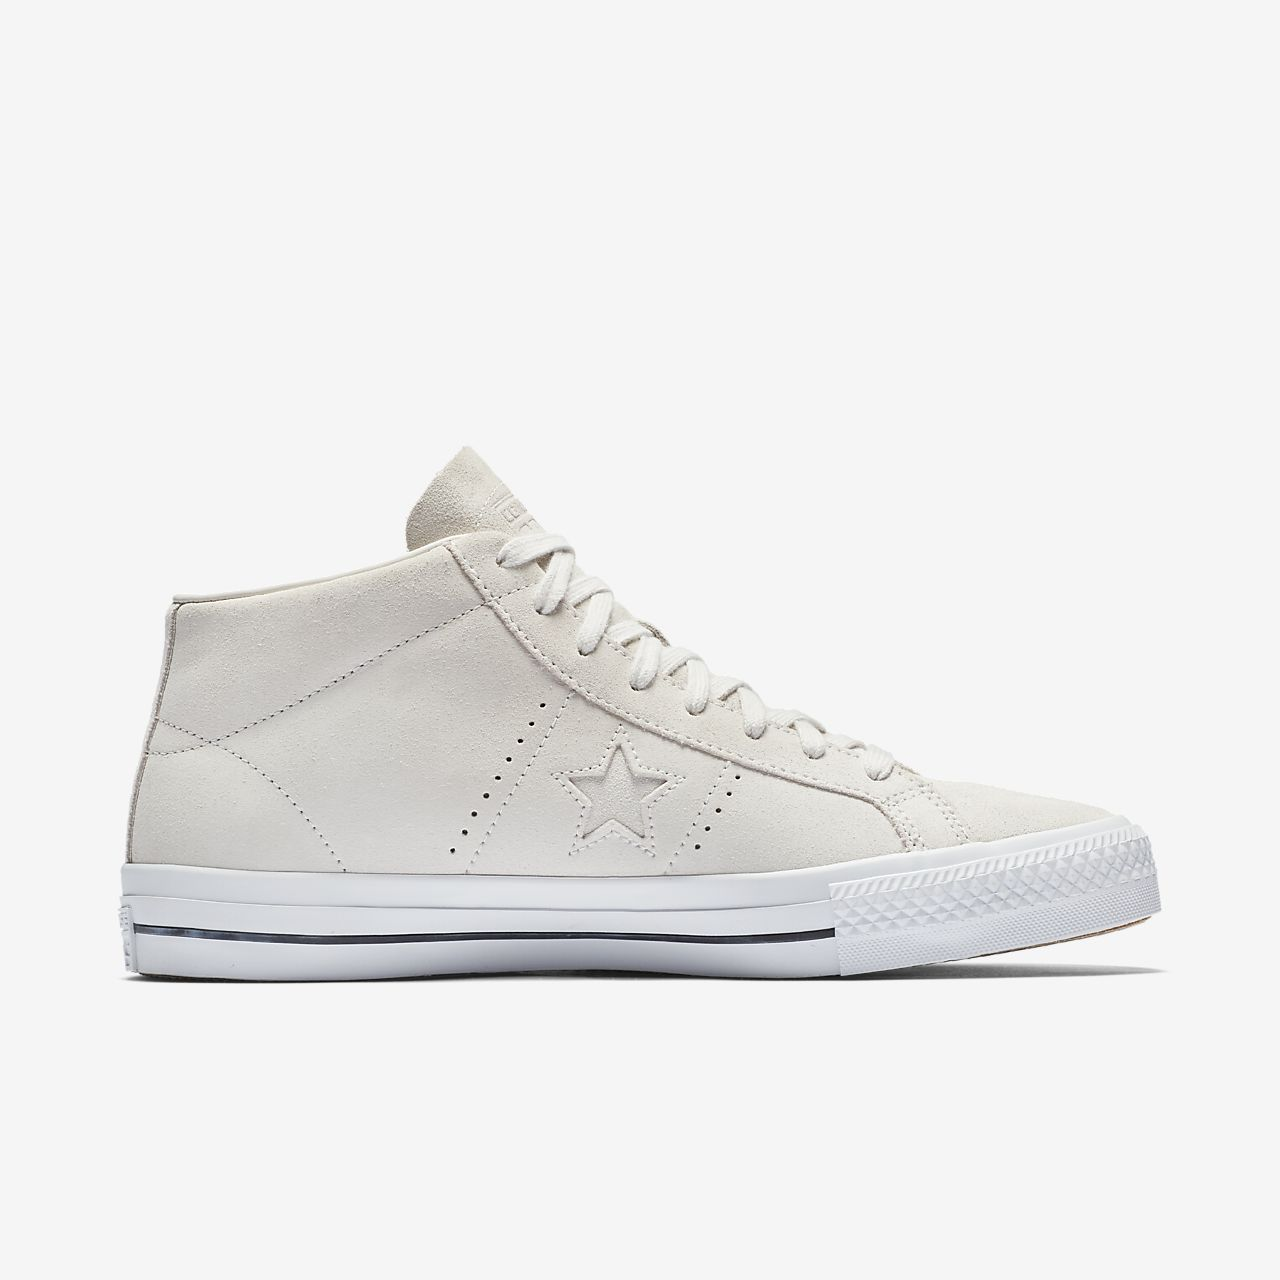 converse one star high tops